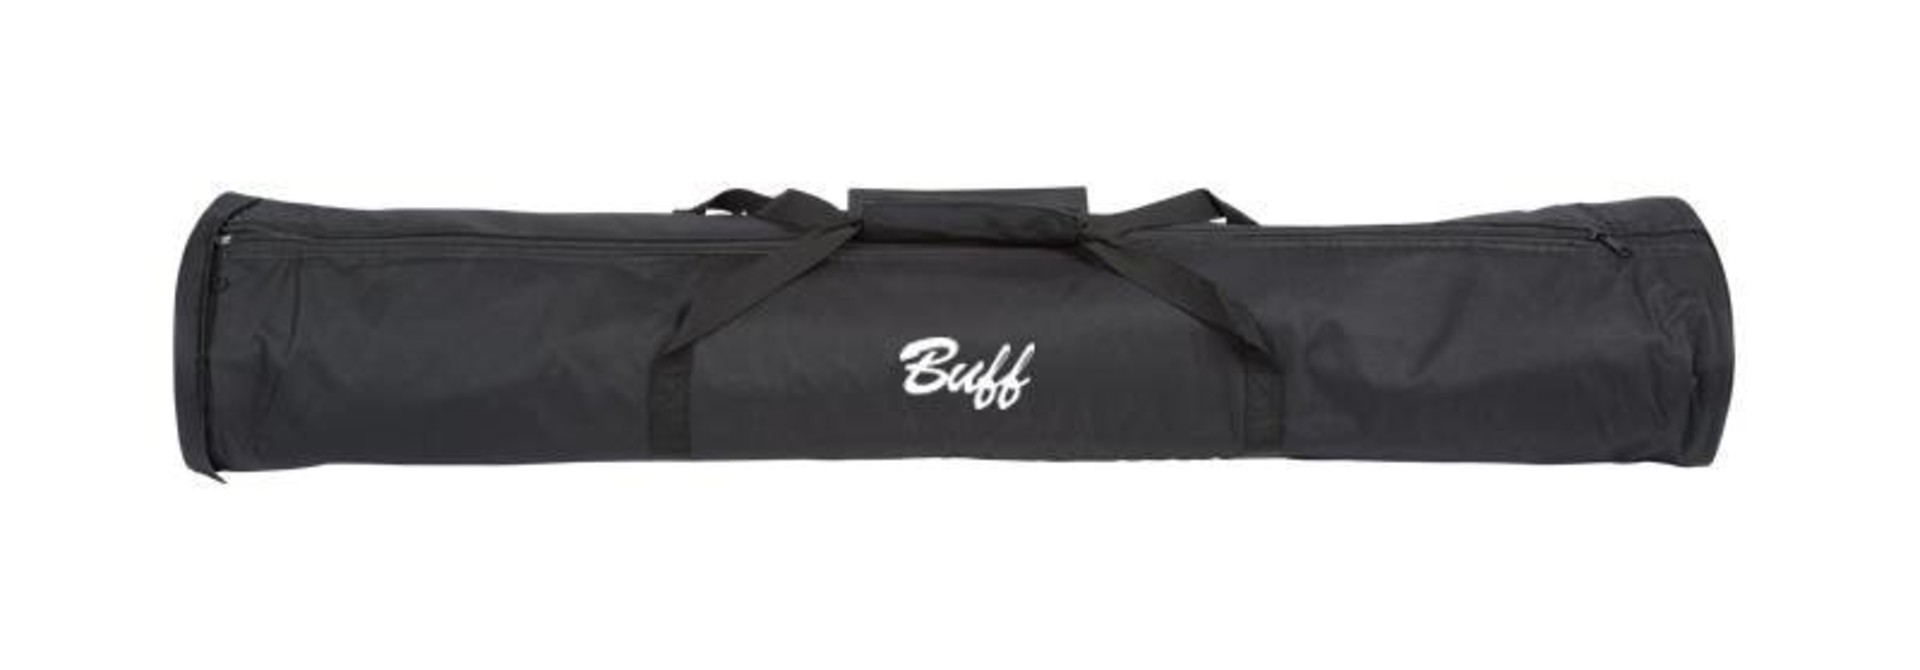 Light Stand Carrying Bag